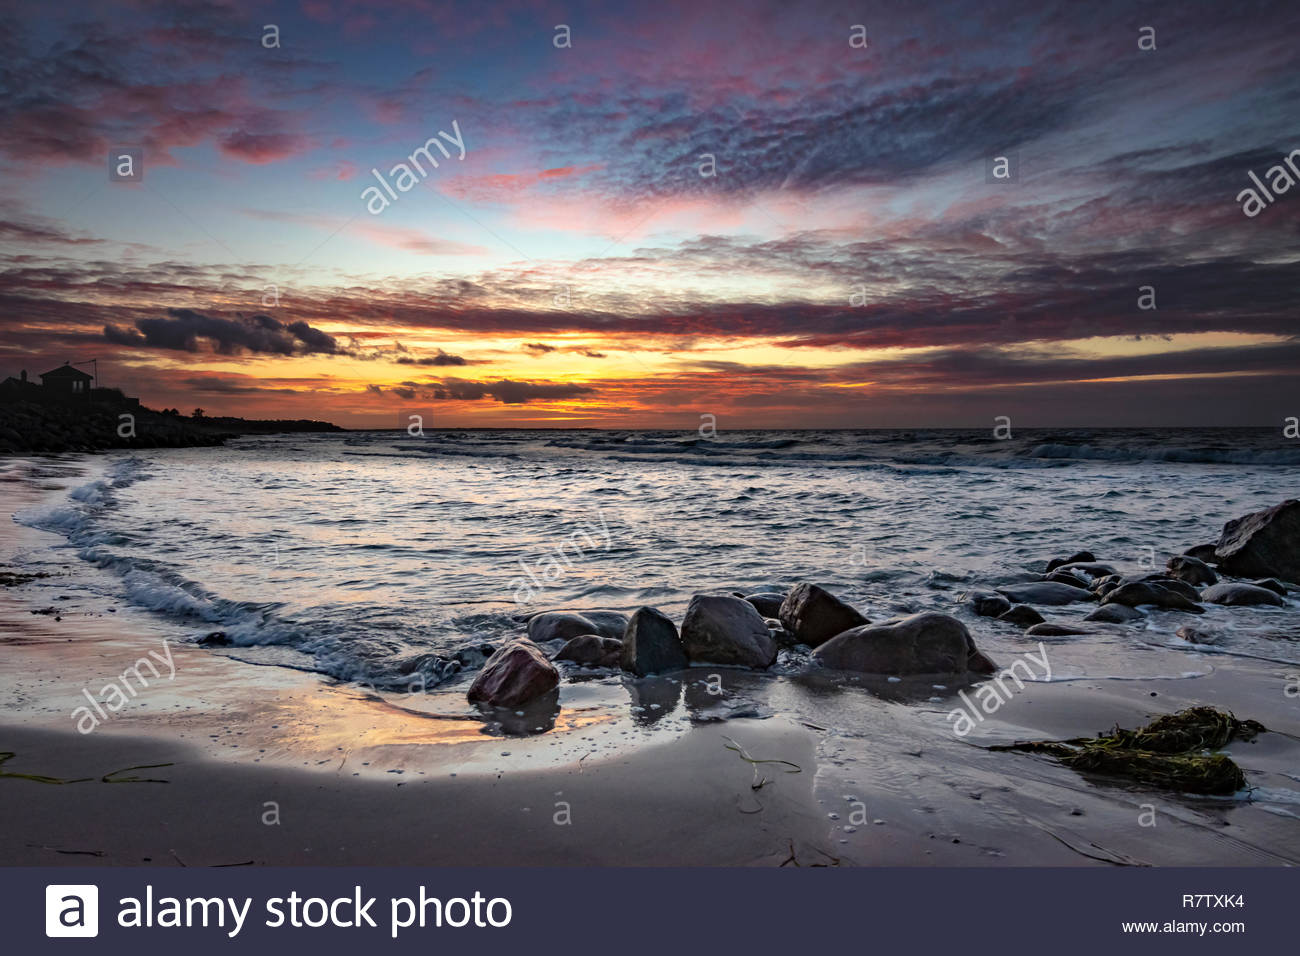 Dramatic sunset over ocean with stones in foreground - Stock Image